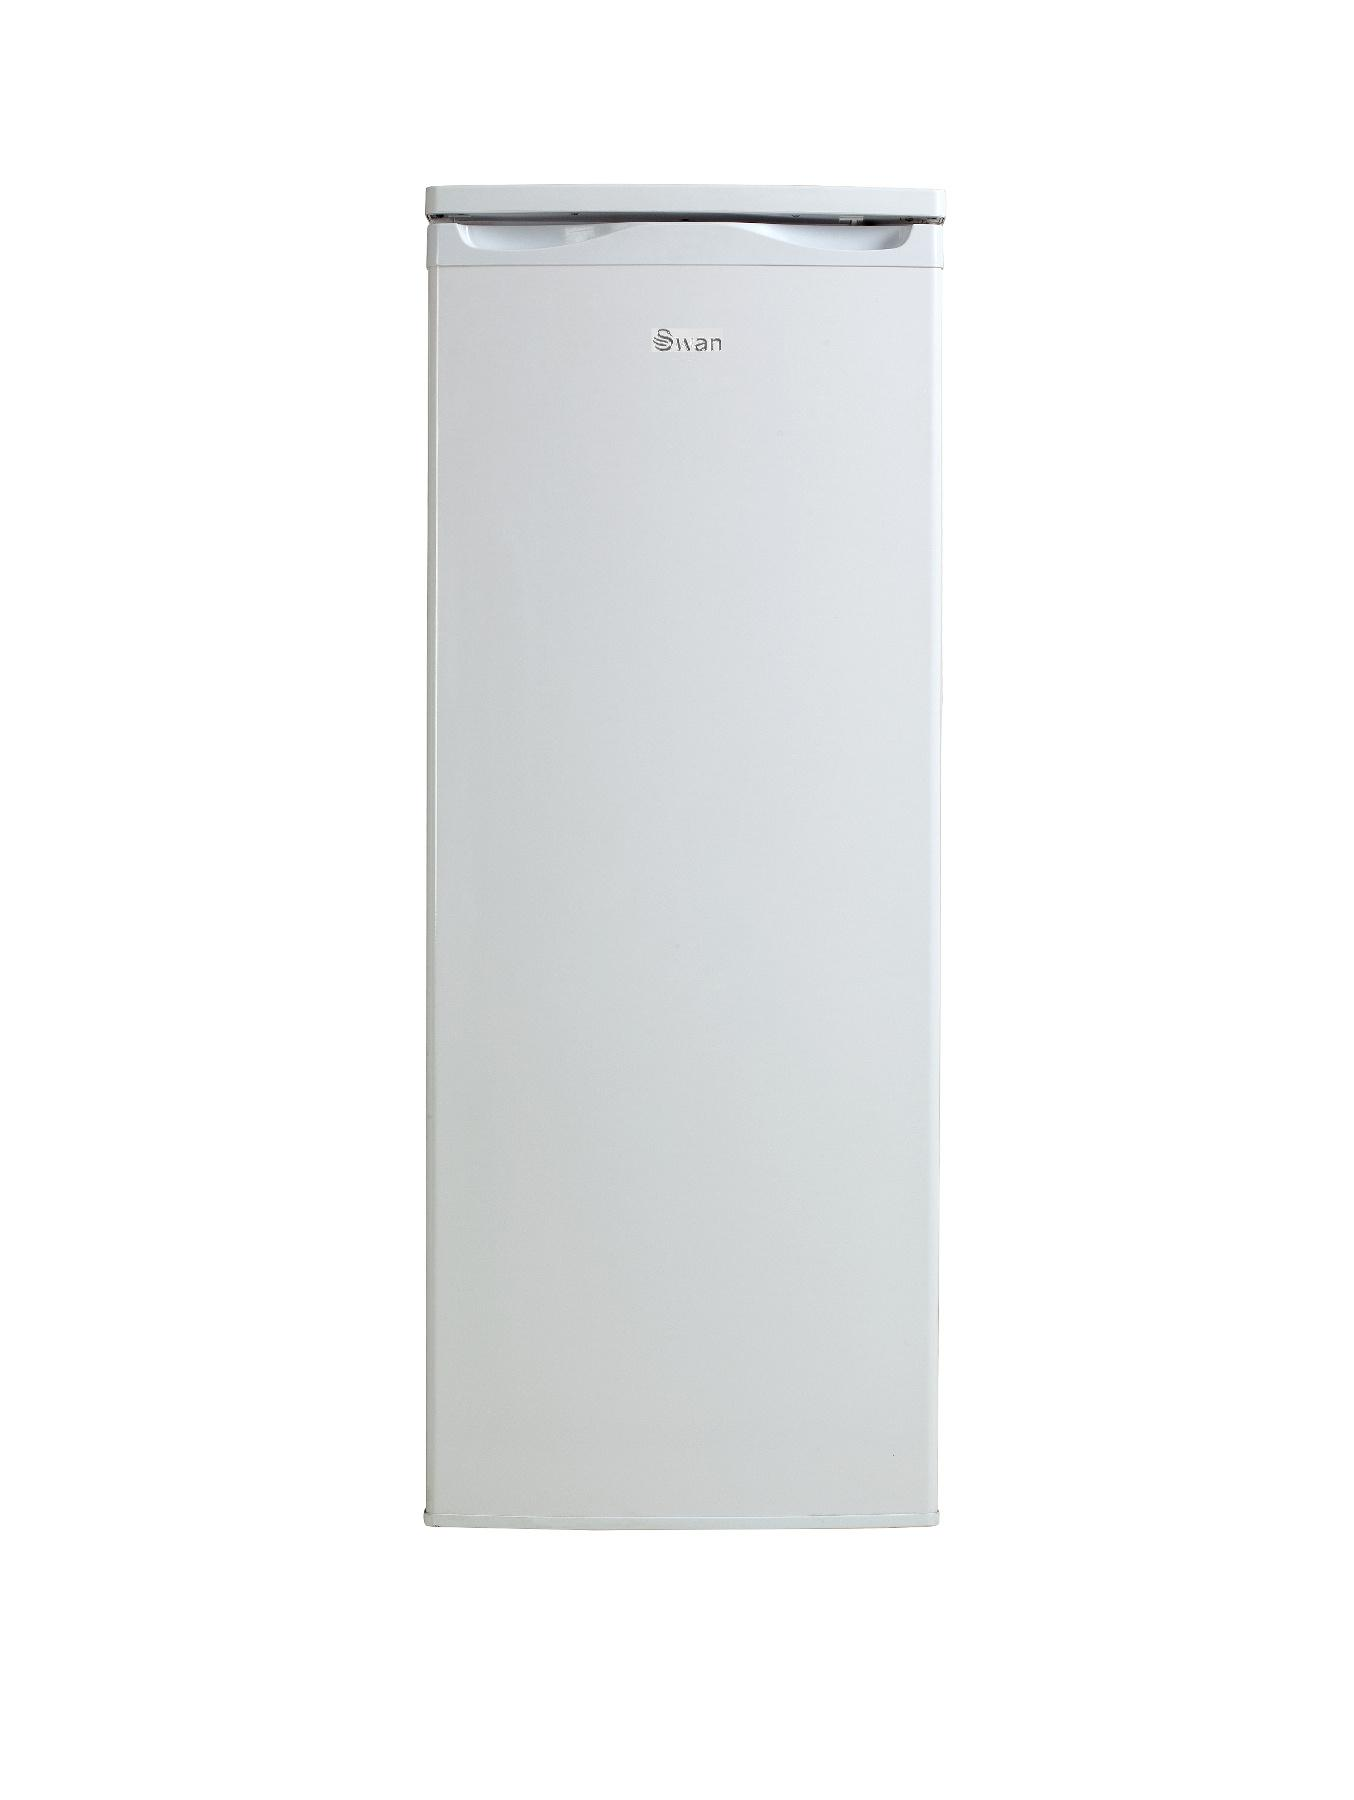 Swan SR5171W 55cm Tall Freezer - White (Next Day Delivery)